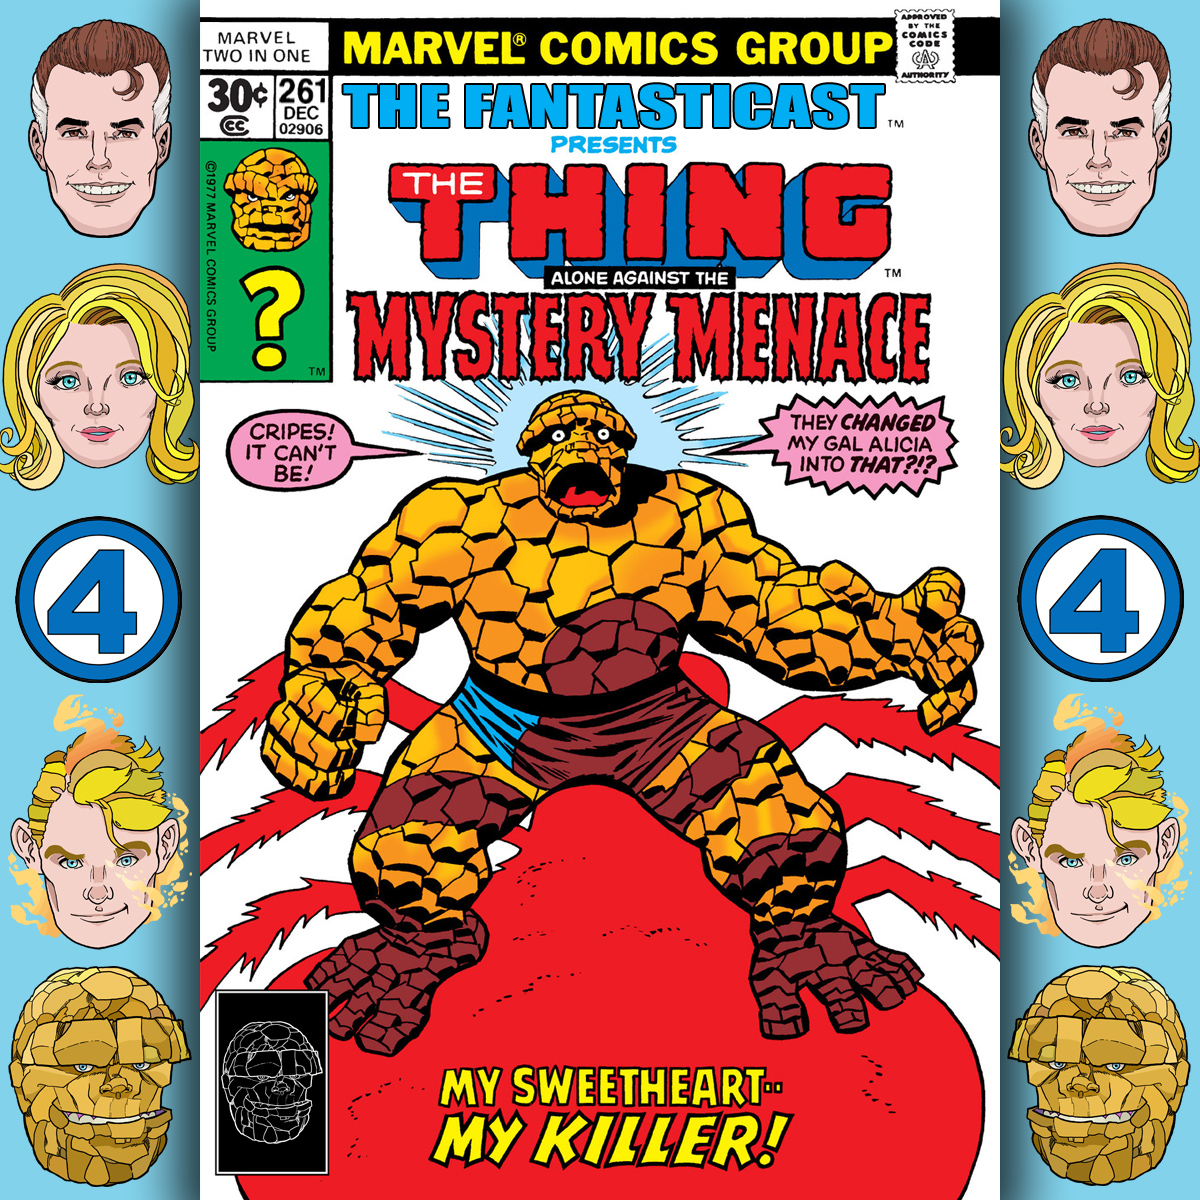 The Fantasticast Episode 261